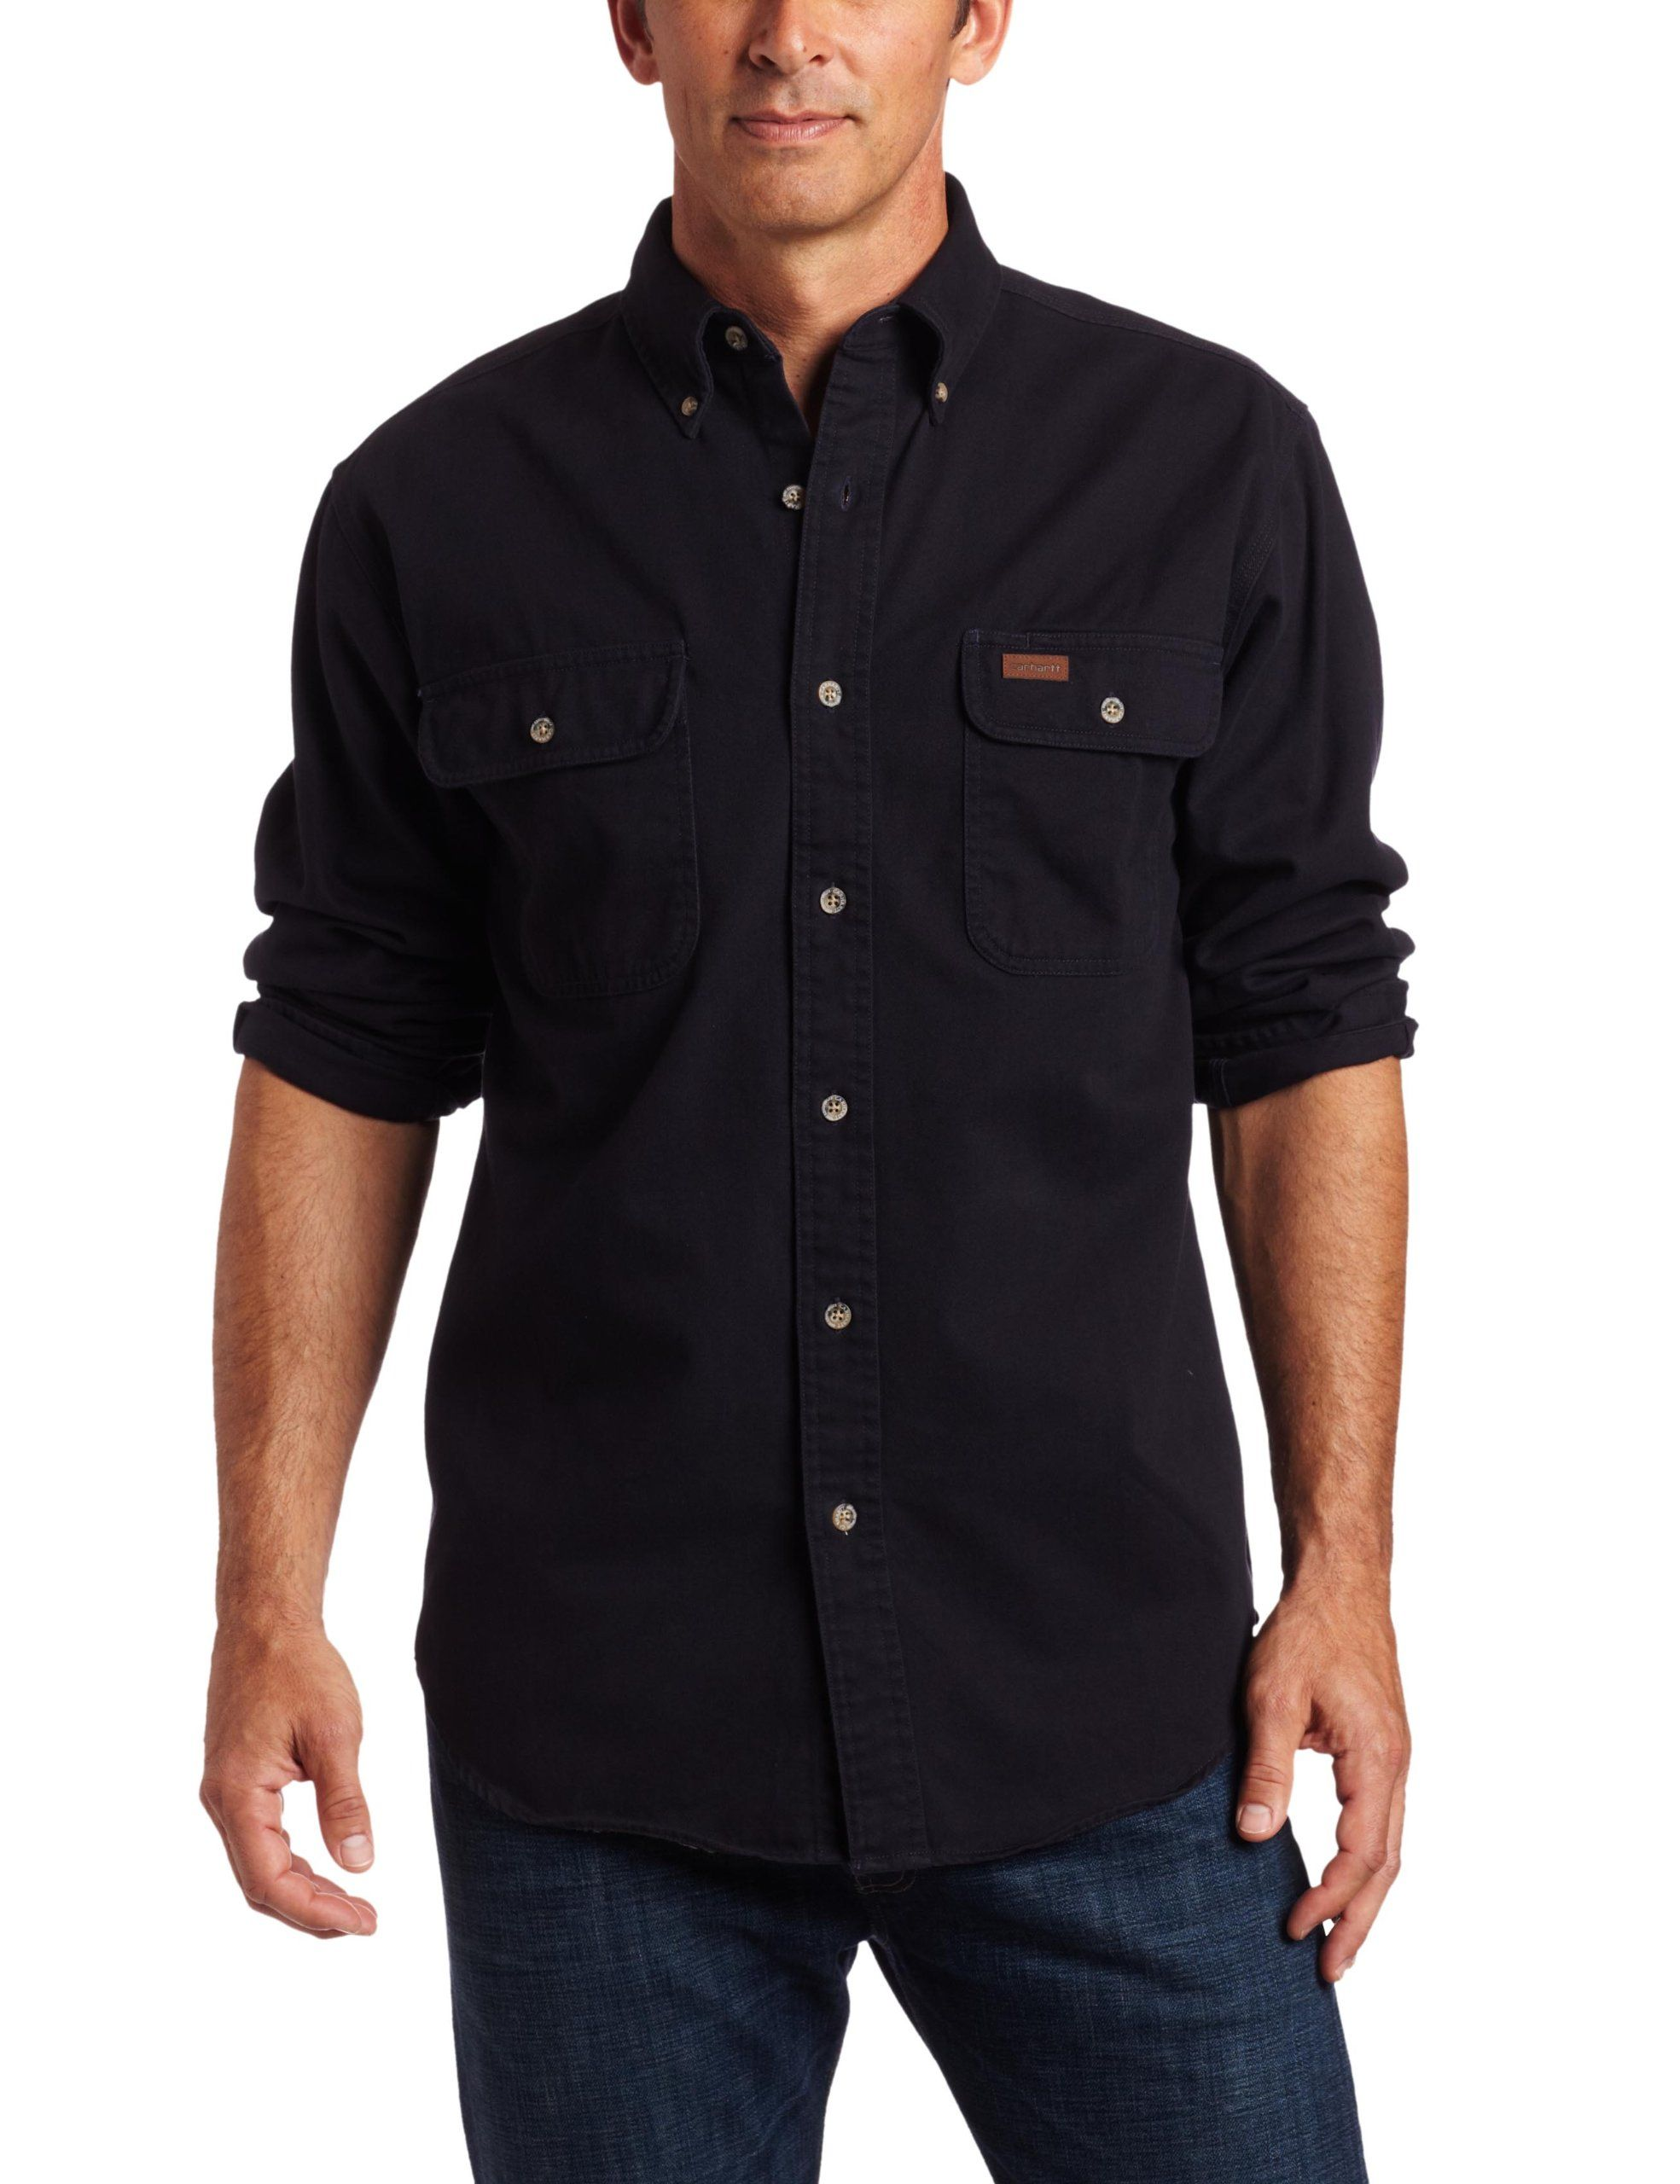 c8a6f45c0e1 Amazon.com  Carhartt Men s Oakman Work Shirt  Button Down Shirts  Clothing